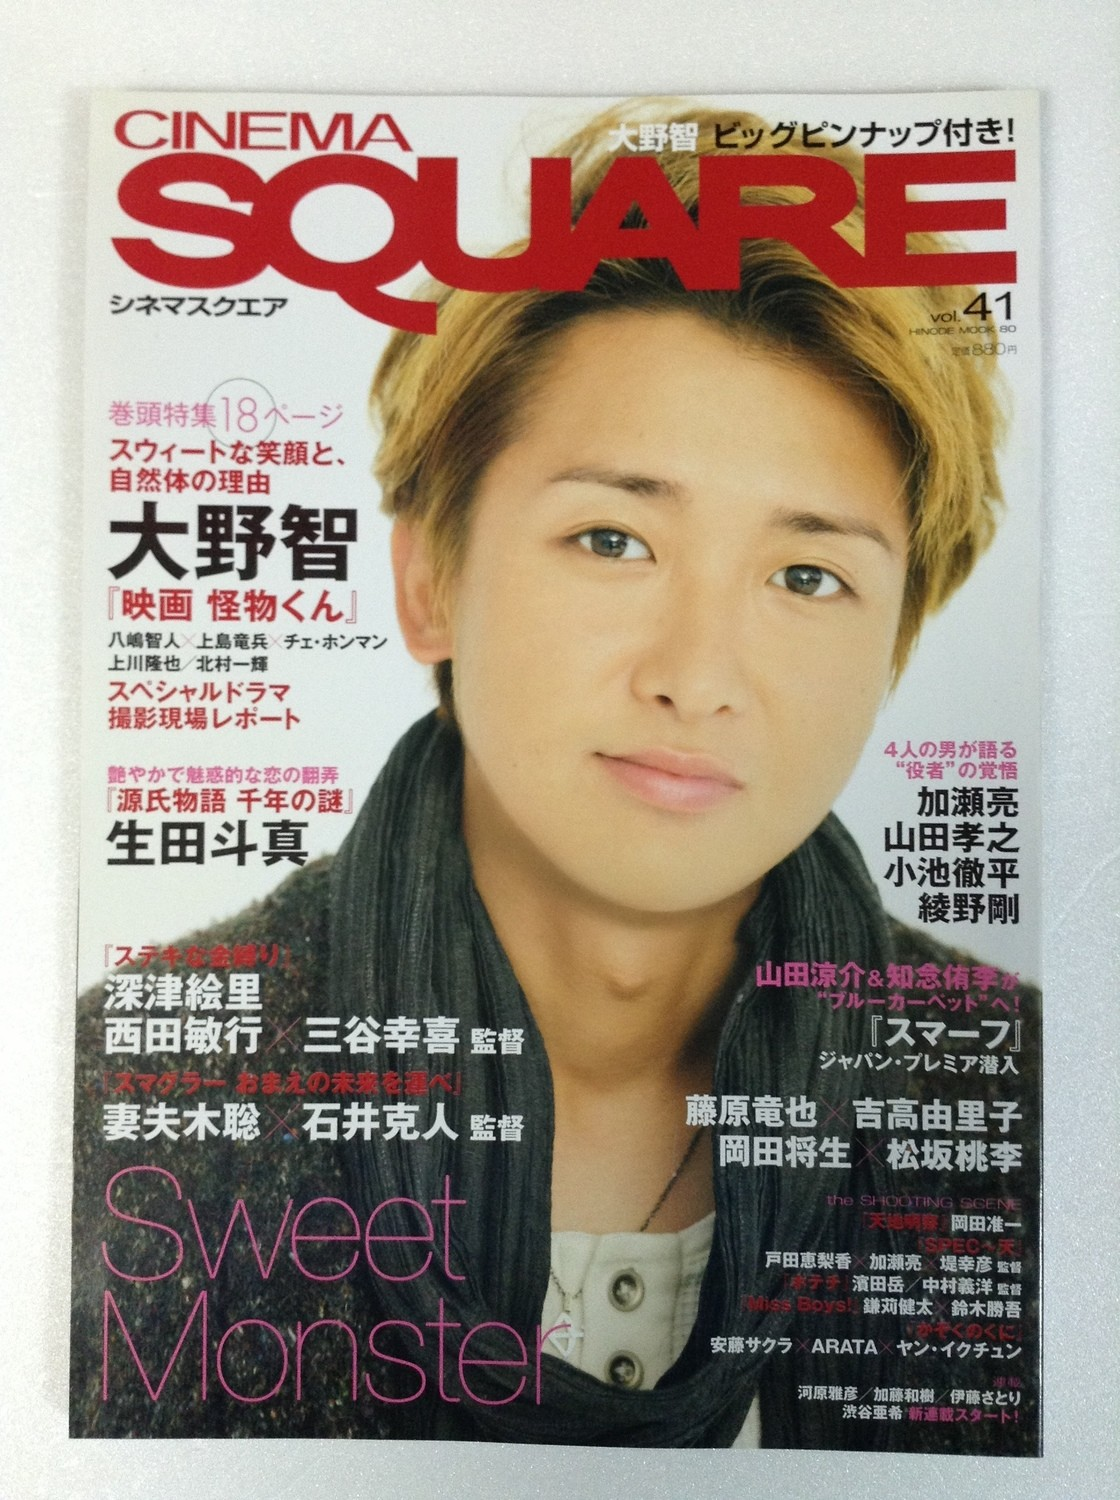 Cinema Square Vol.41 Magazine featuring Ohno Satoshi